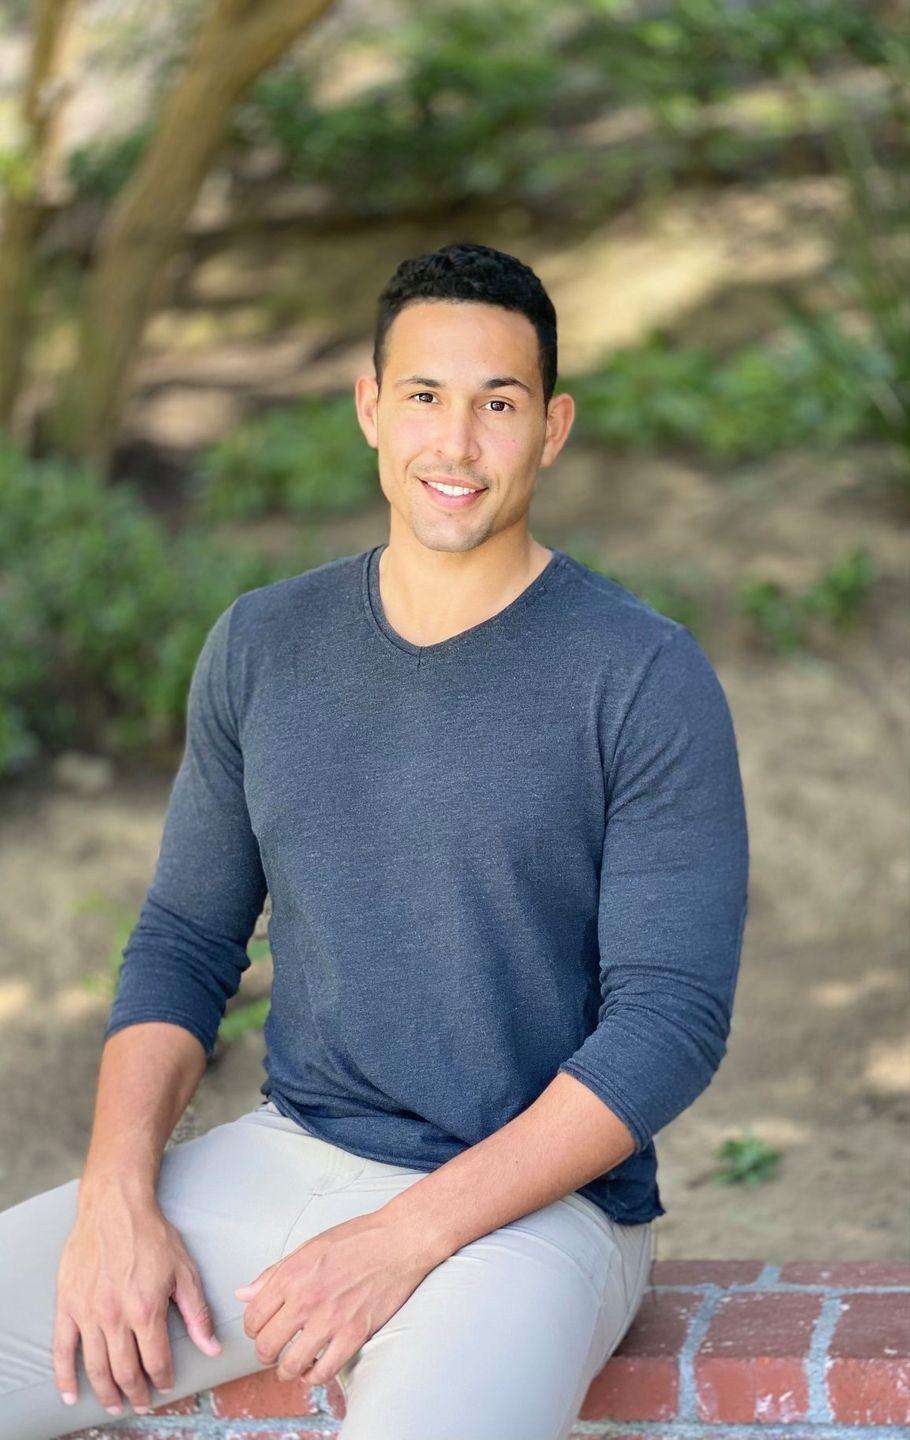 <p>When everyone else stands, Thomas sits. At least that's his pose of choice for his pic, and it's making him stand out from the crowd. He's a real estate agent and played basketball fro the University of San Diego.</p><p><strong>Age: 28</strong></p><p><strong>Hometown: San Diego, CA</strong></p><p><strong>Instagram: </strong></p>